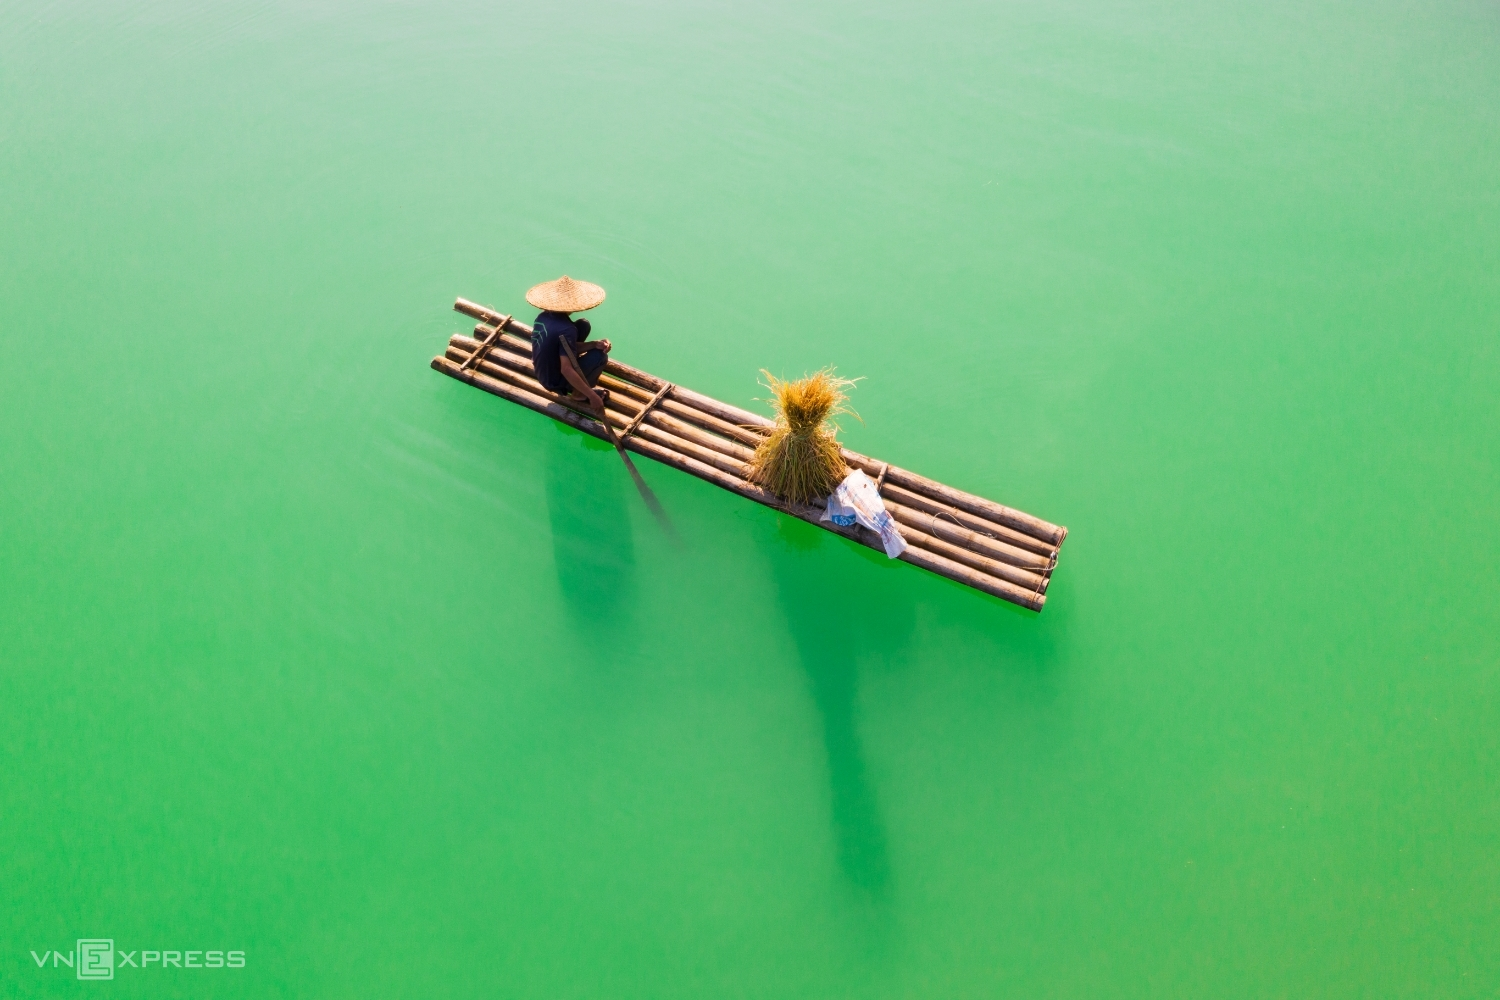 Nhan was fascinated by the image of a farmer sitting on a craft with his bundle of rice, floating on the jade waters along the Quay Son River in Cao Bang Province on the border with China.